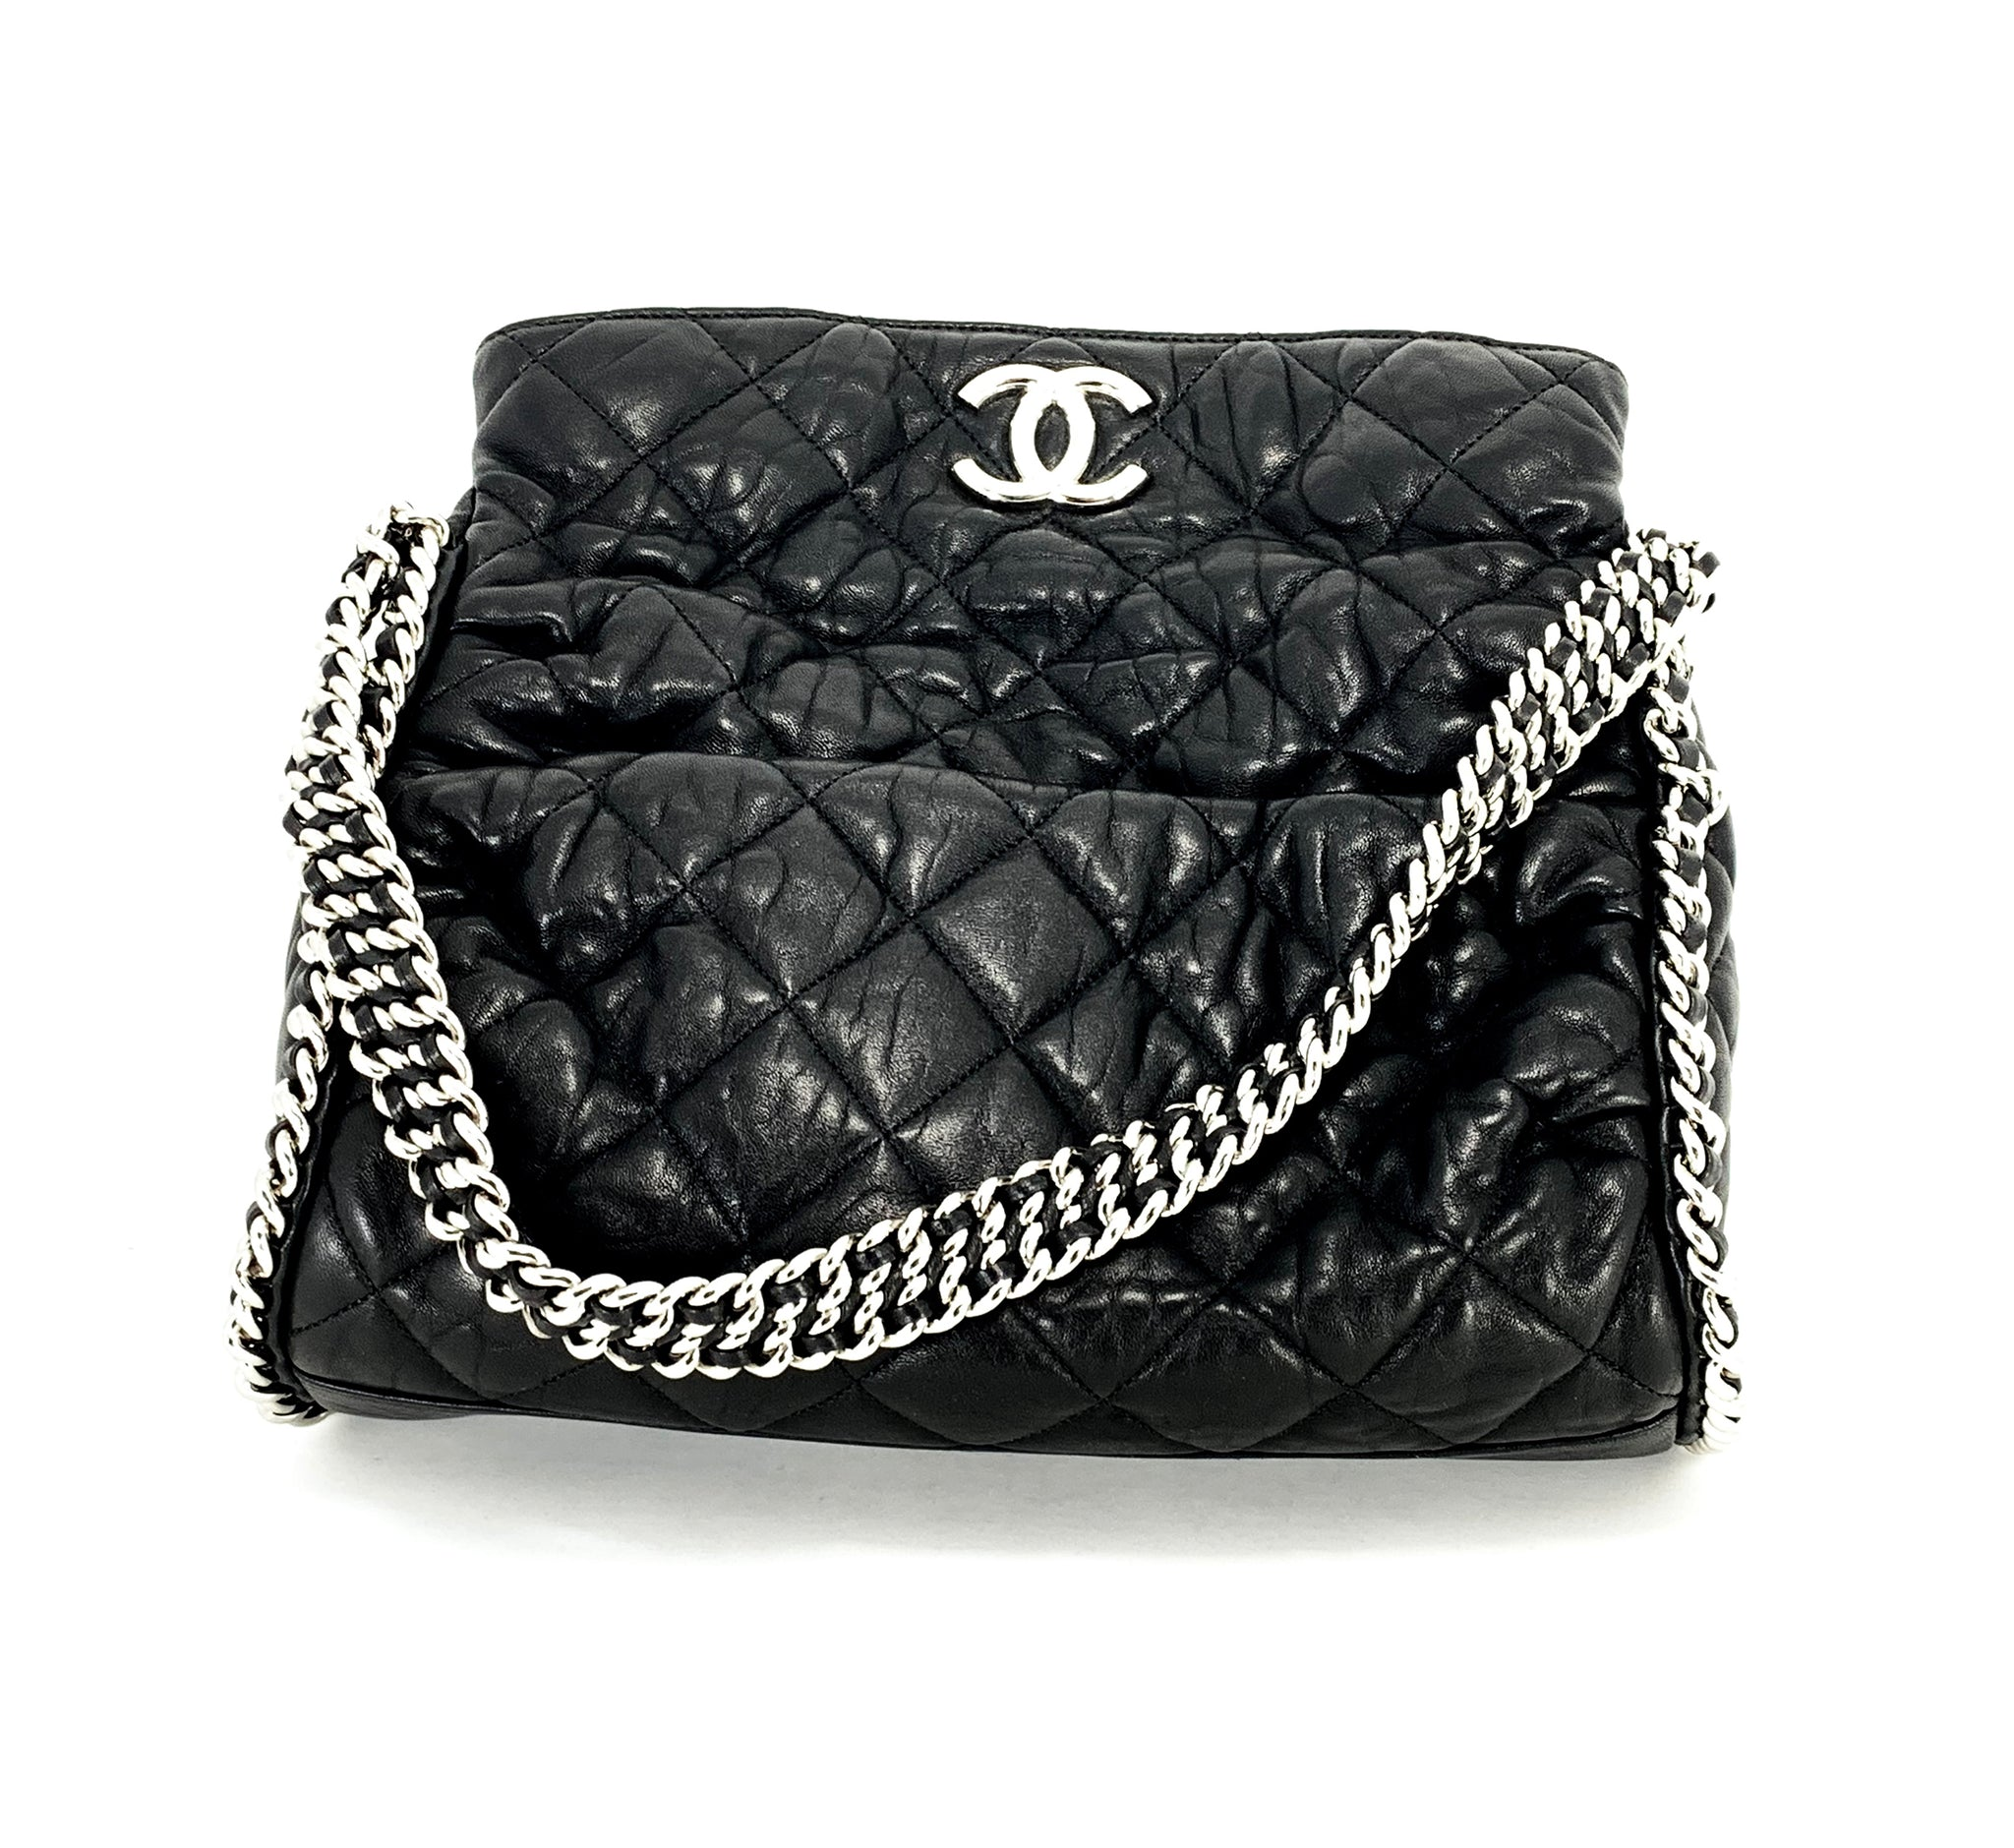 d4e1c4210a Load image into Gallery viewer, CHANEL Black Hobo Quilted Ultimate Soft  Chain Around Tote Bag ...